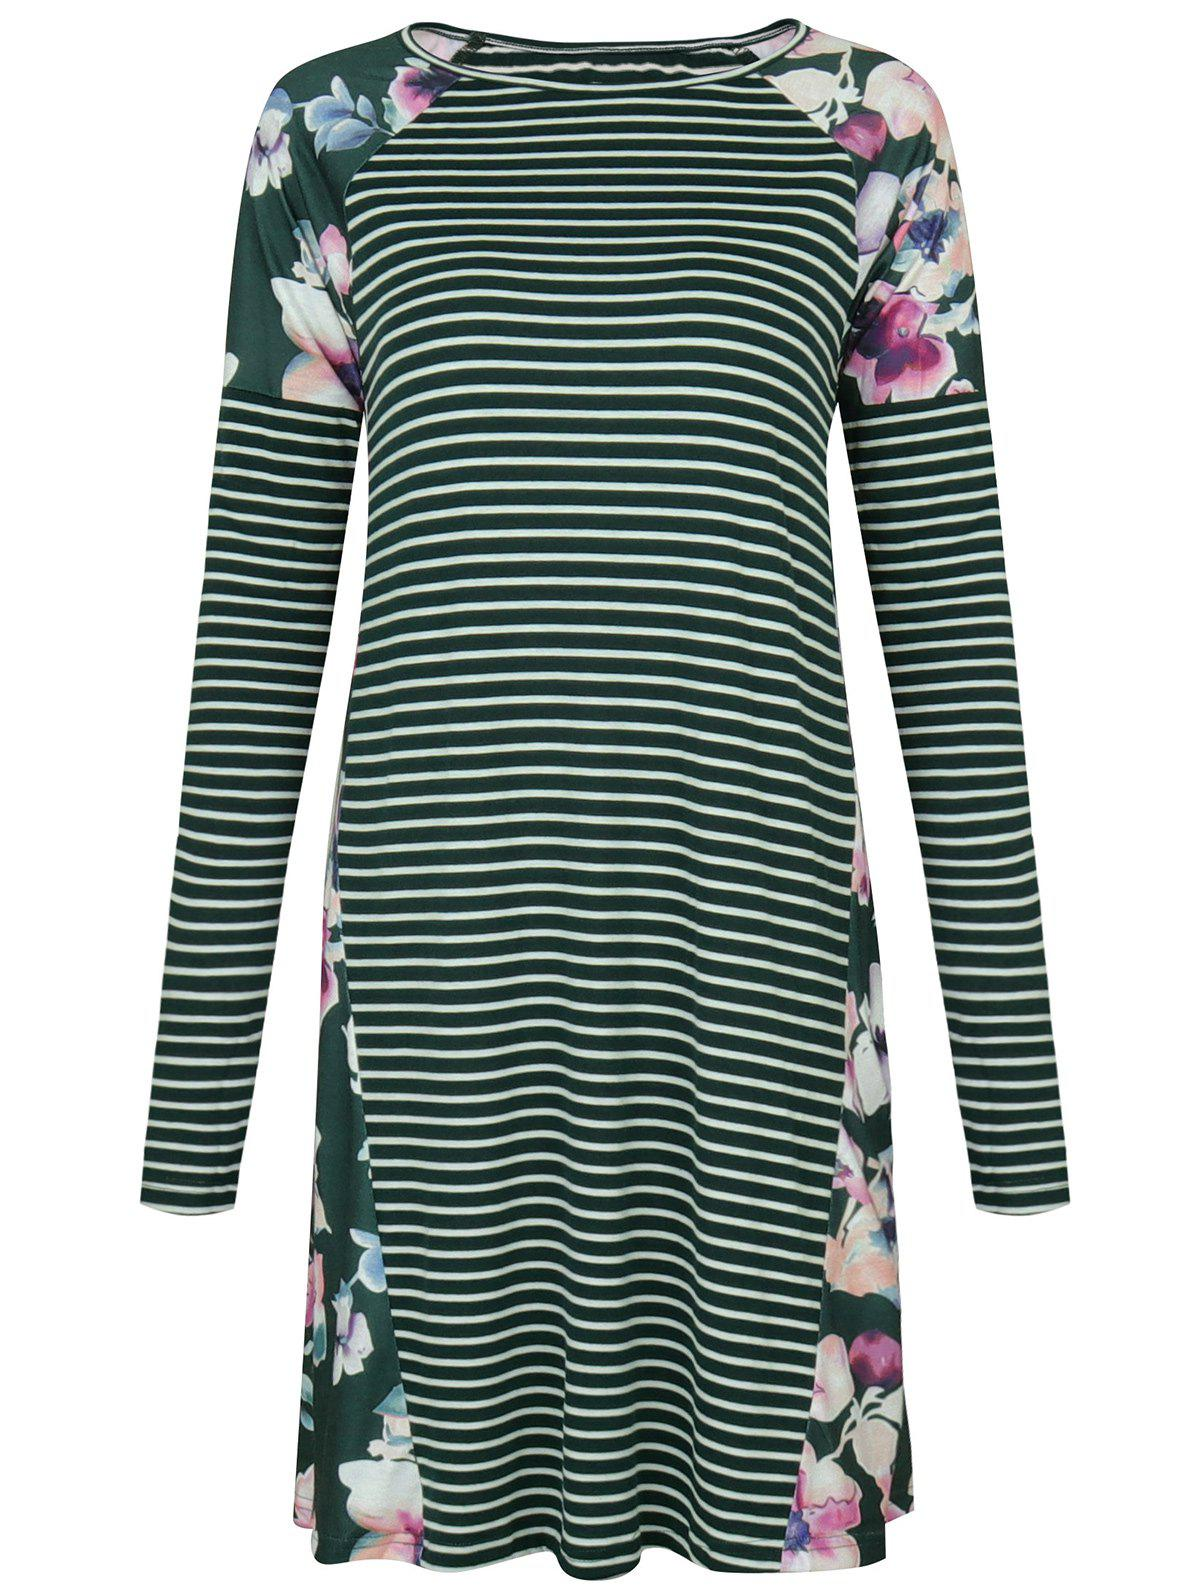 Raglan Sleeve Floral Print Striped Dress - GREEN L